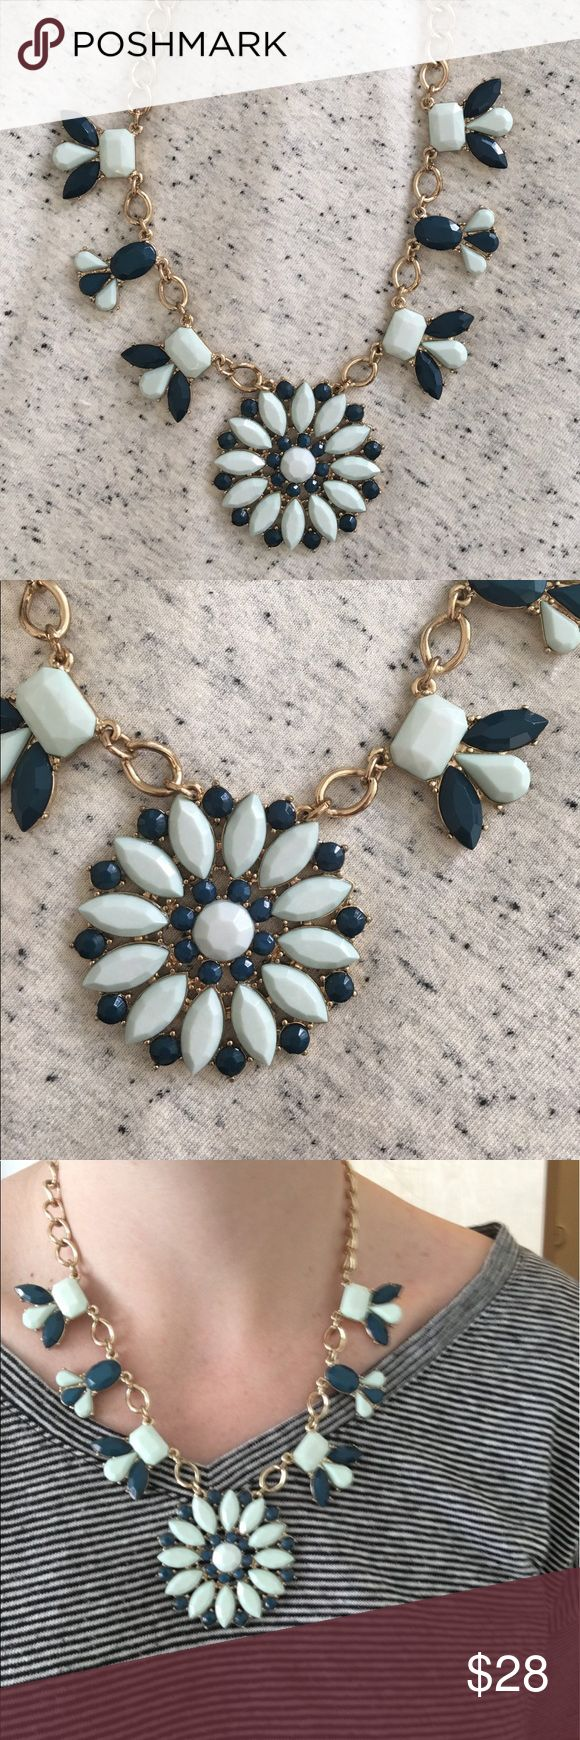 """J Crew Necklace Beautiful light blue and real J Crew Necklace. Gold chain, 18"""" with 3"""" adjustable to add length J. Crew Jewelry Necklaces"""